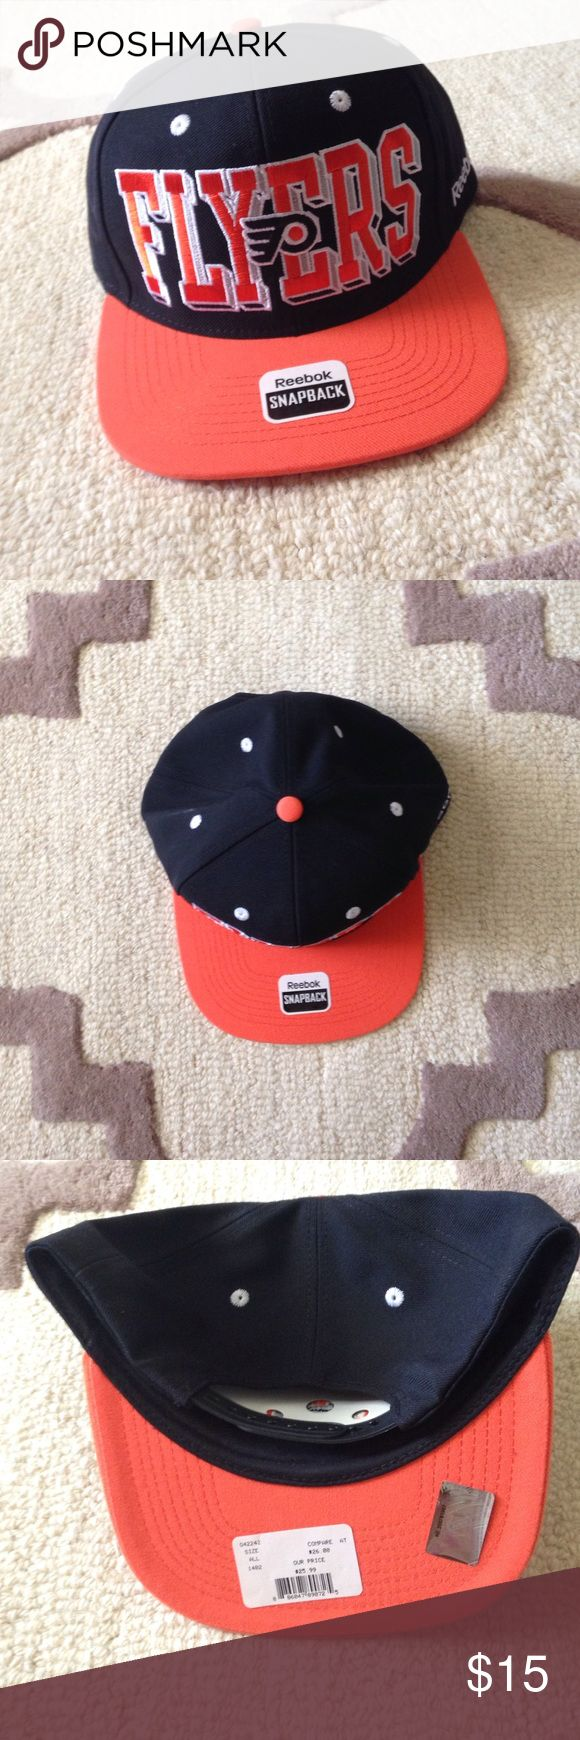 Selling this Flyers Snap Back by Reebok - NHL Shop on Poshmark! My username is: cruss10. #shopmycloset #poshmark #fashion #shopping #style #forsale #Reebok #Other